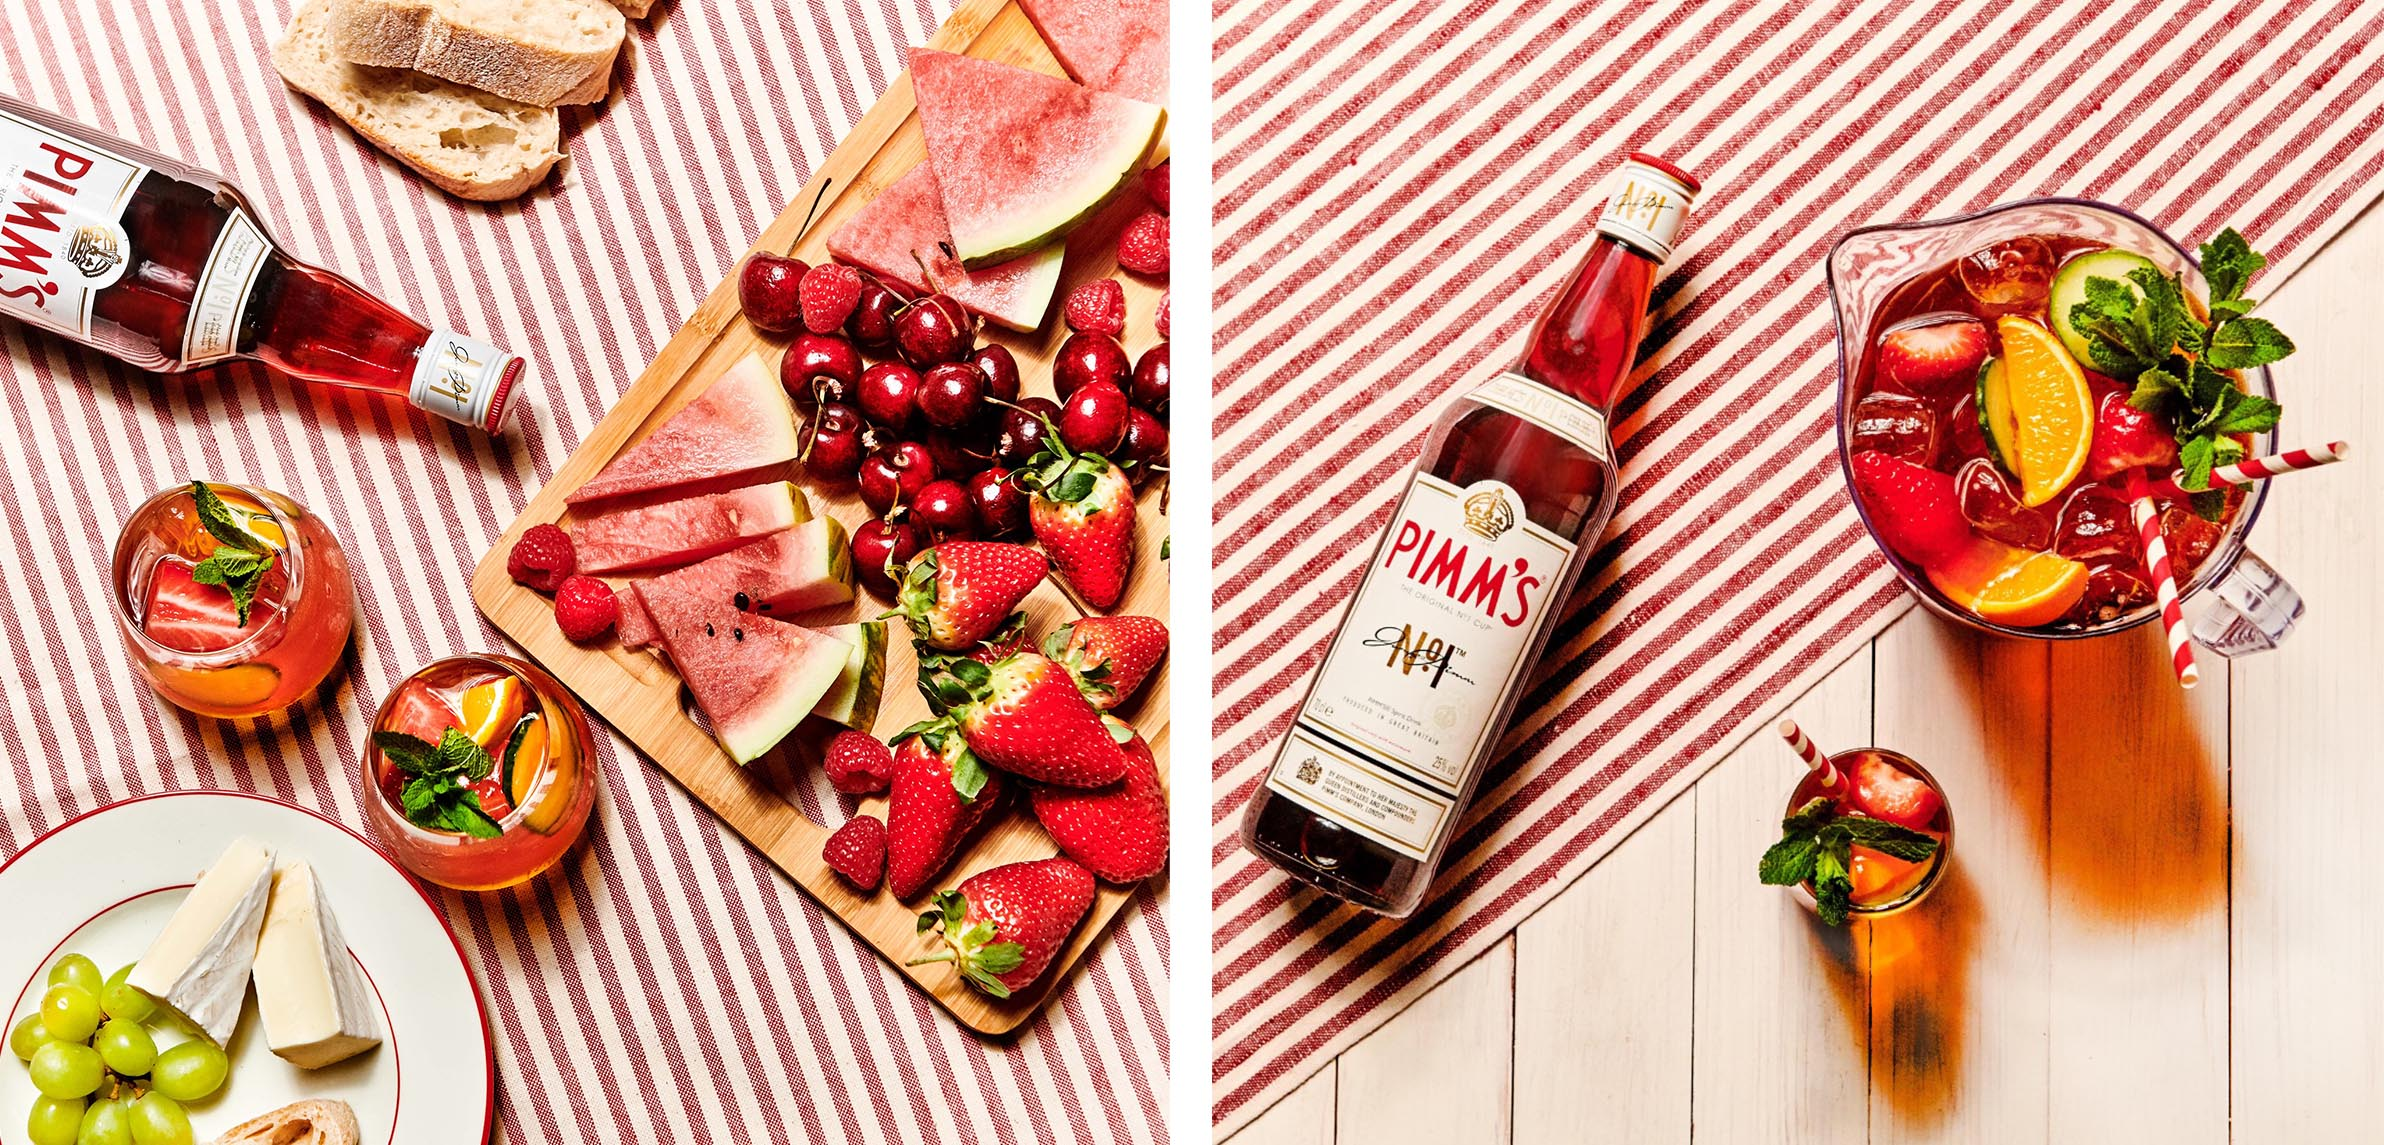 Pimm's No 1 Cup on stripy cloth